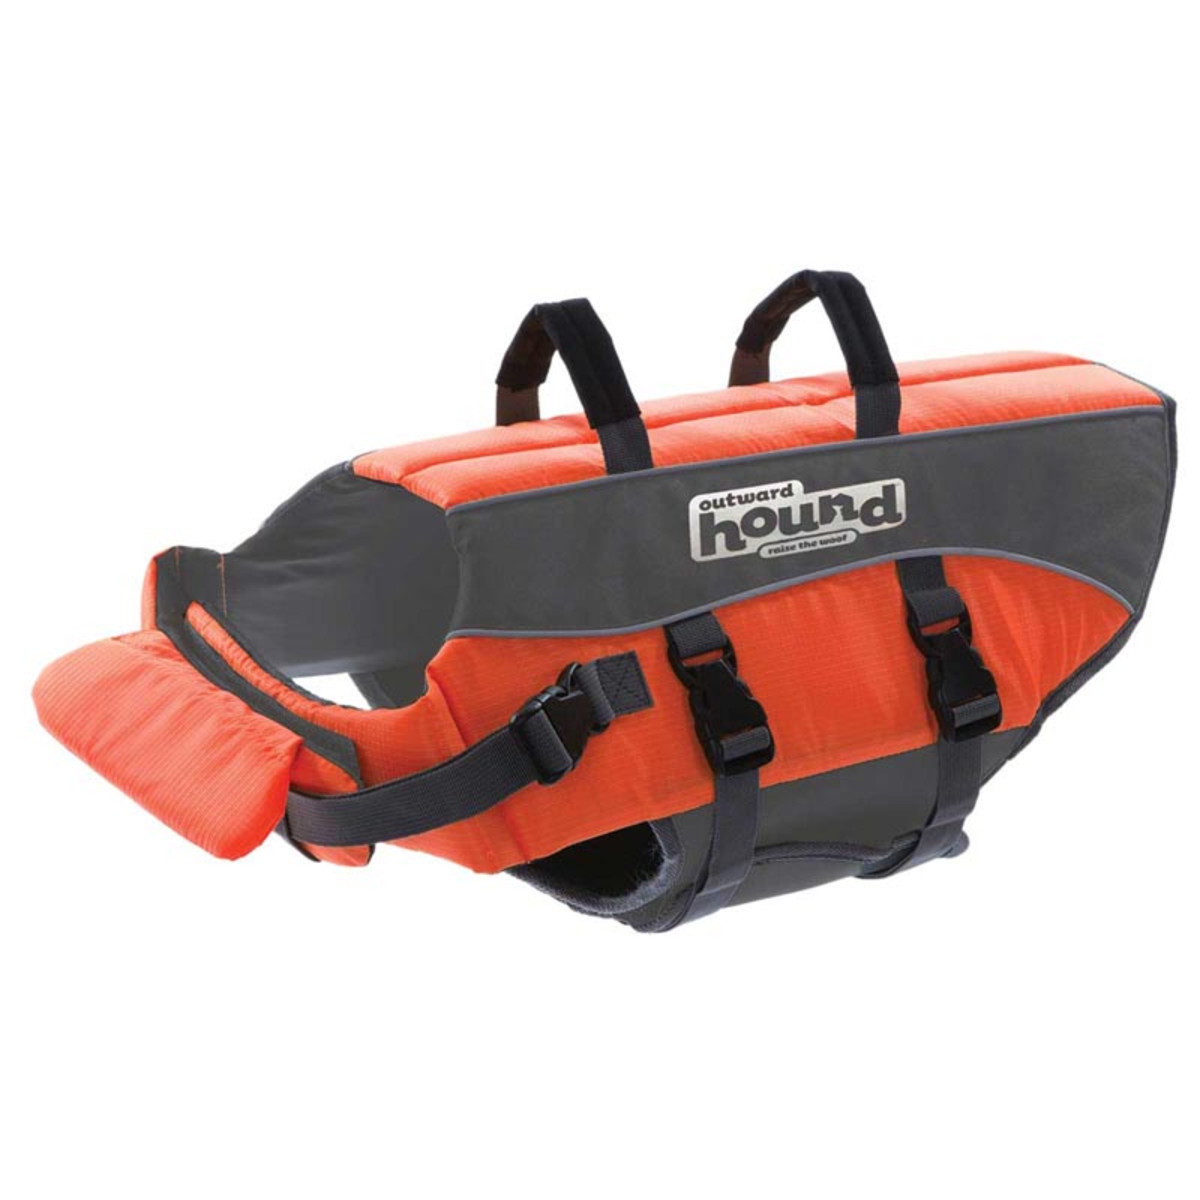 Outward Hound Orange Life Jacket for Dogs - XL 31-42 inches